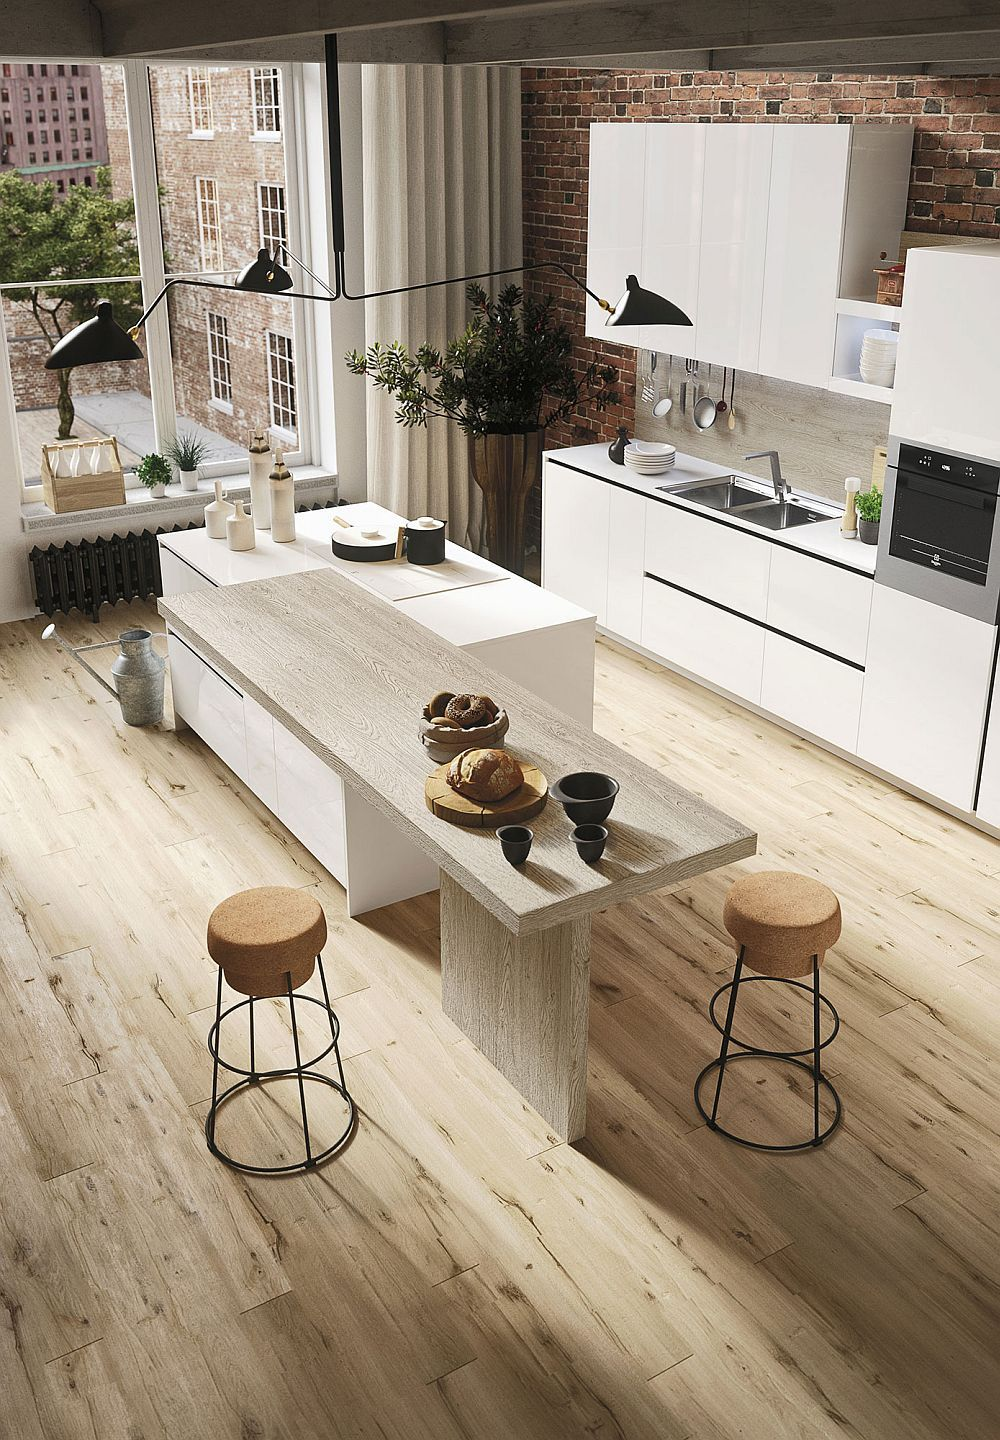 First Kitchen: Modular Freedom Wrapped in Casual Minimalism ...